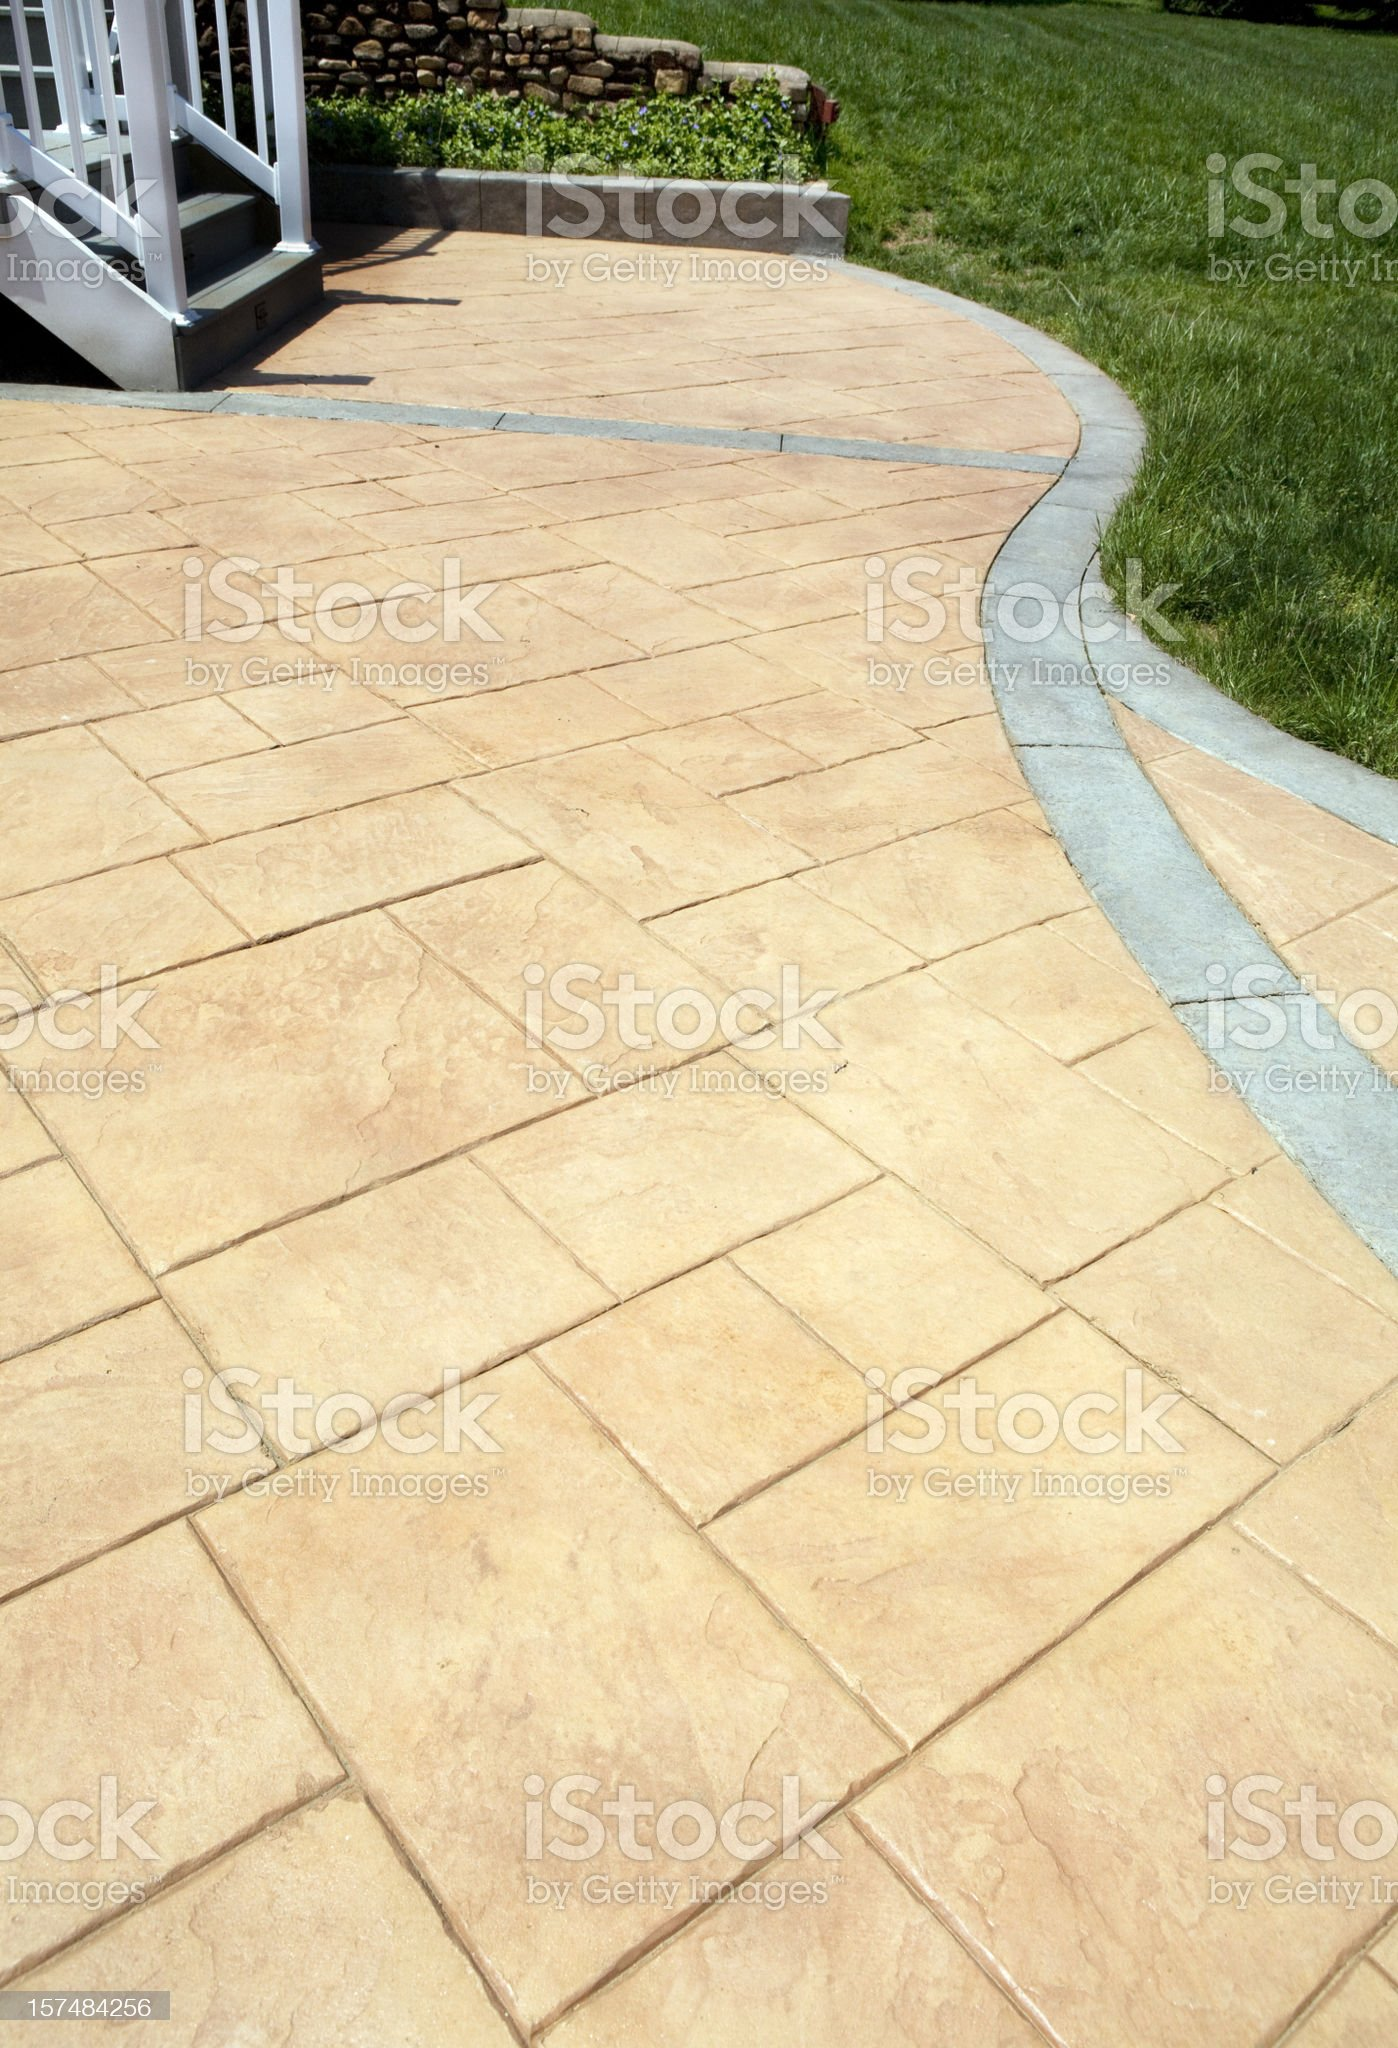 Stamped Concrete Patio royalty-free stock photo